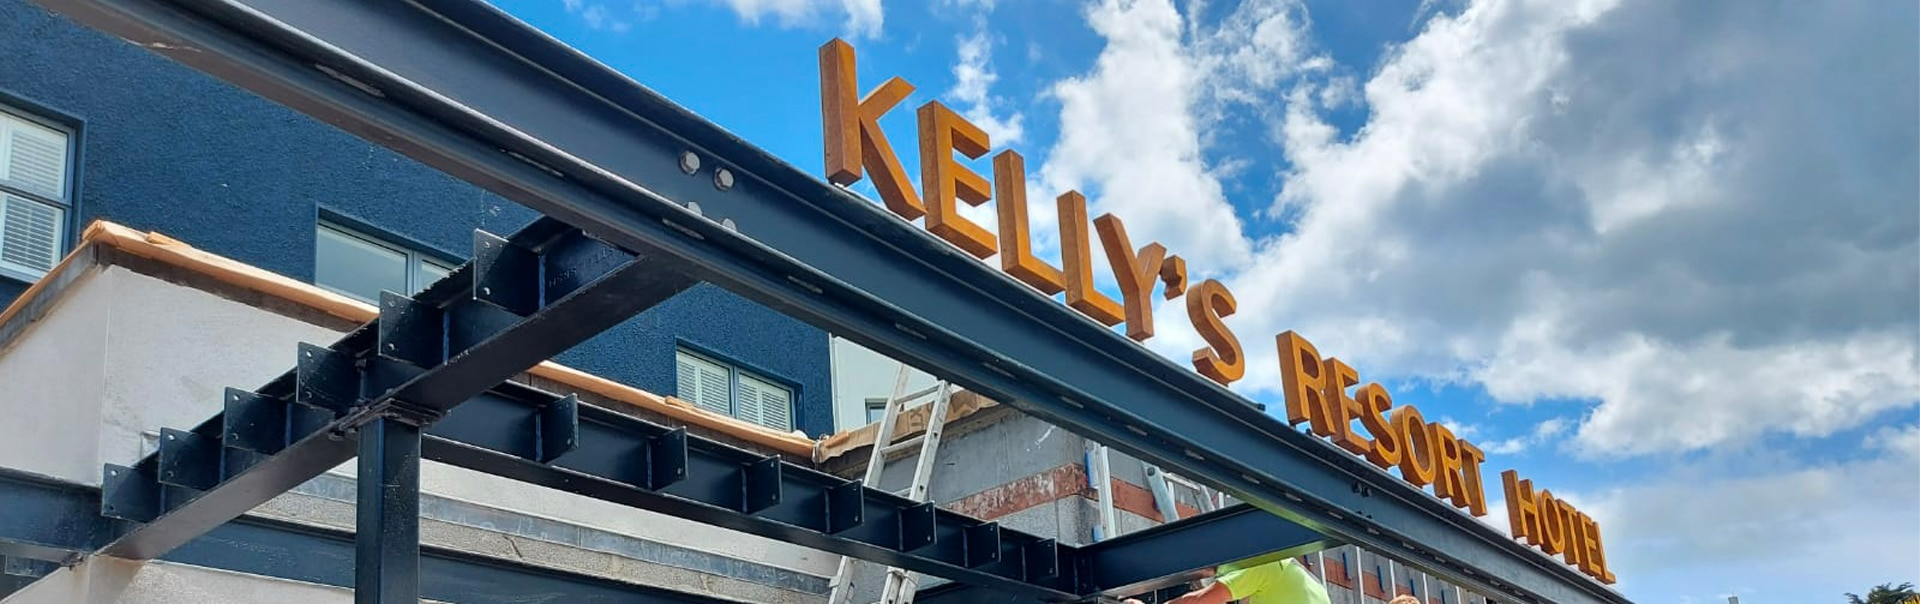 Installing a corten steel canopy sign at Kelly's Resort Hotel Wexford